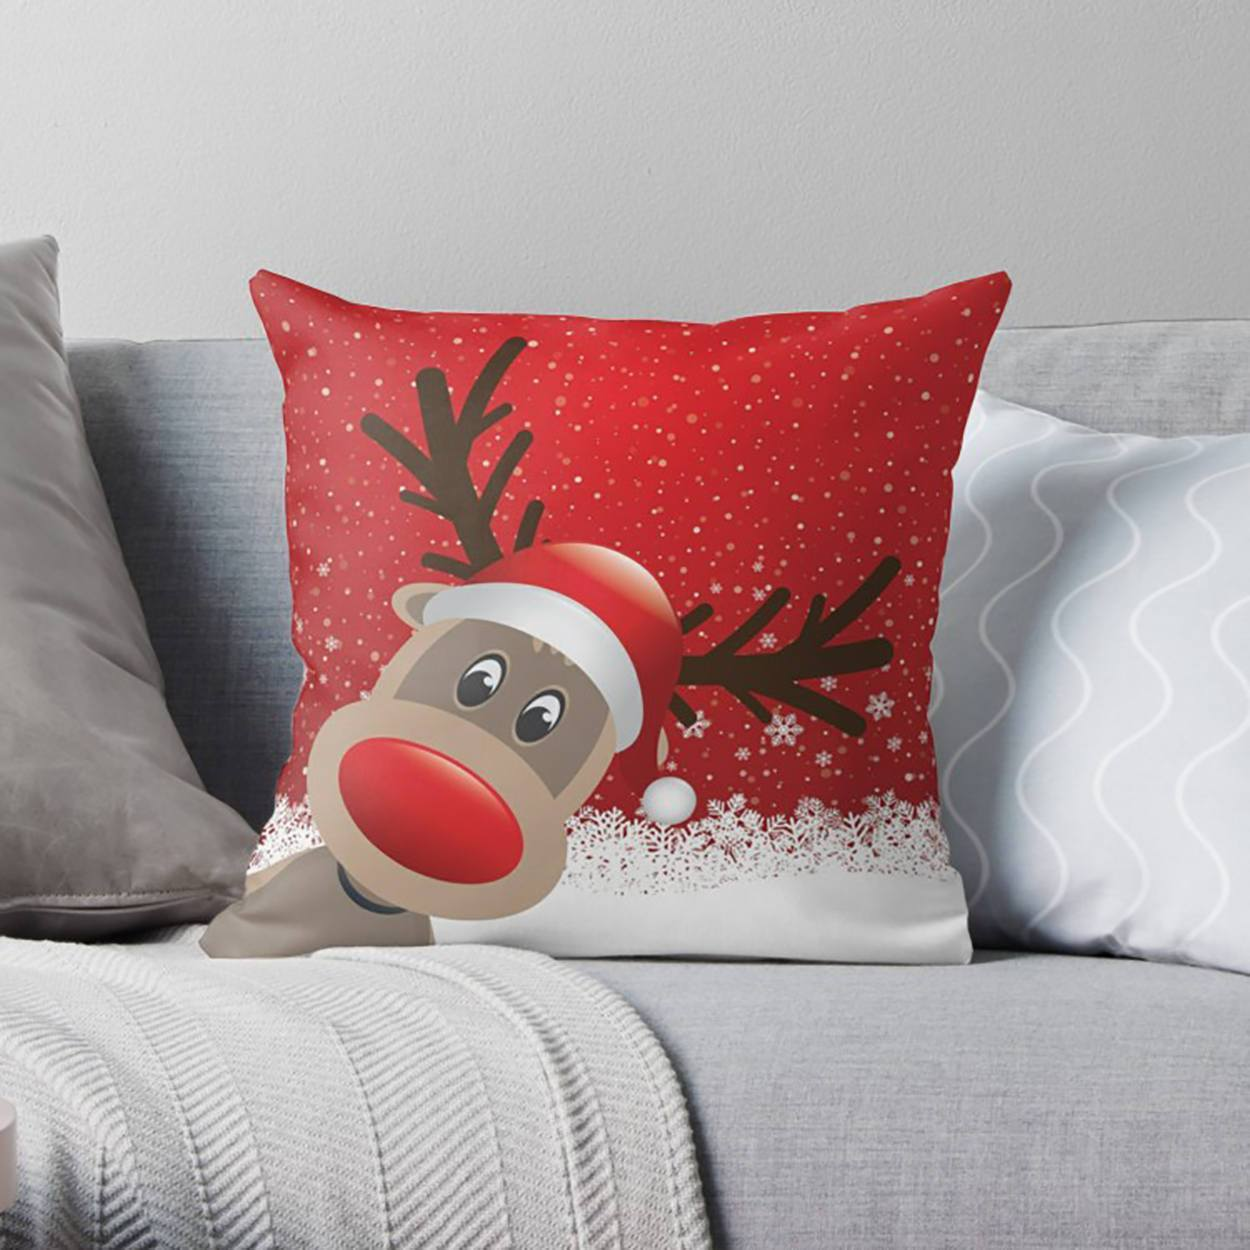 Cute Christmas Pillows | Pillow Covers | wFrancis Design